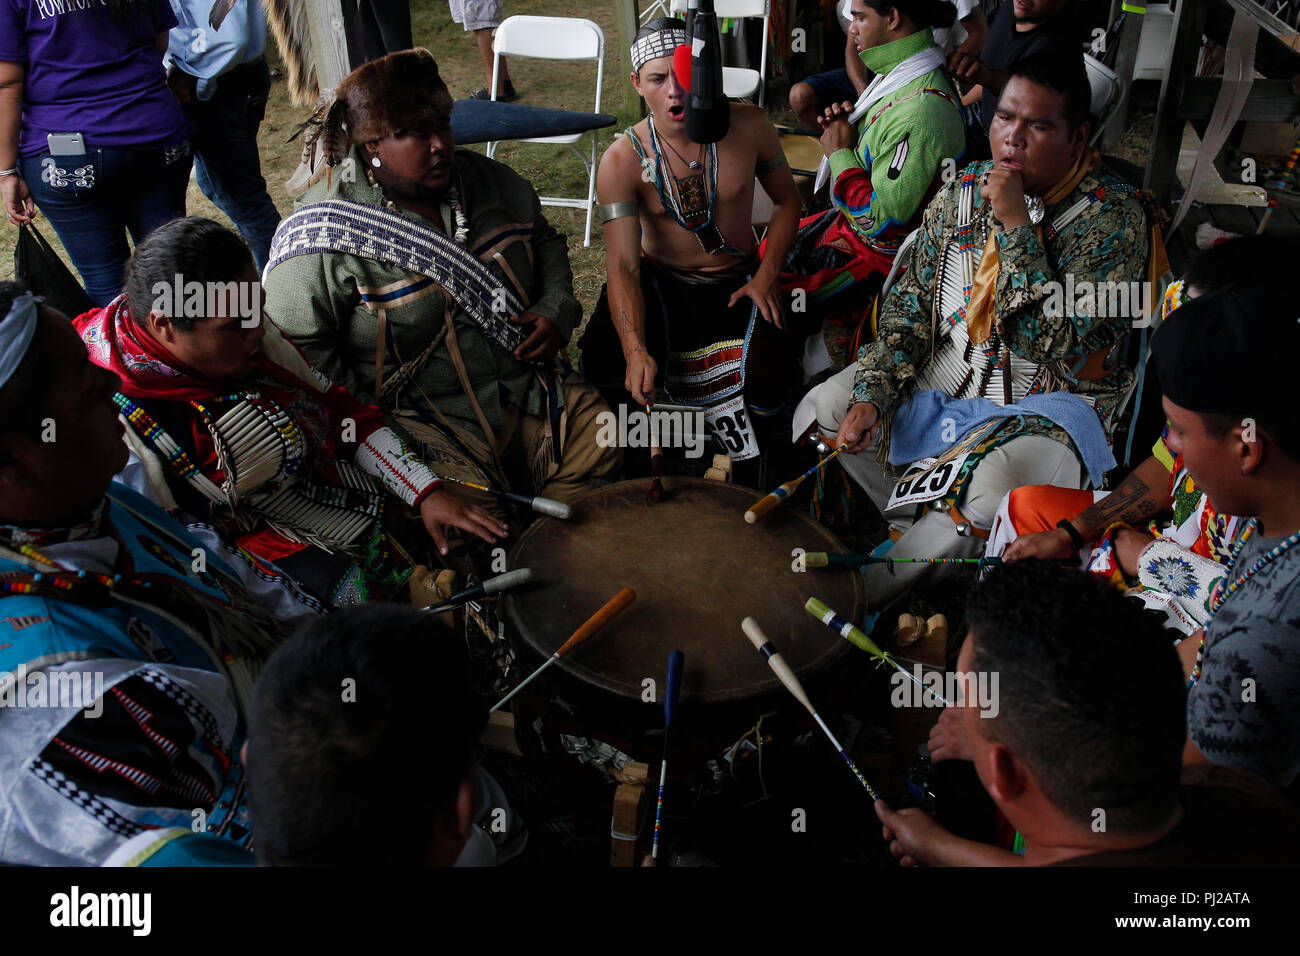 Southhampton, United States of America. 03rd Sep 2018. Group of Native American prepares to dance during the celebration of the 72nd annual Shinnecock Indian Powwow over the Labour Day weekend in Southampton Long Island New York in Southhampton, United States of America, 03 September 2018. (PHOTO) Alejandro Sala/Alamy News Stock Photo